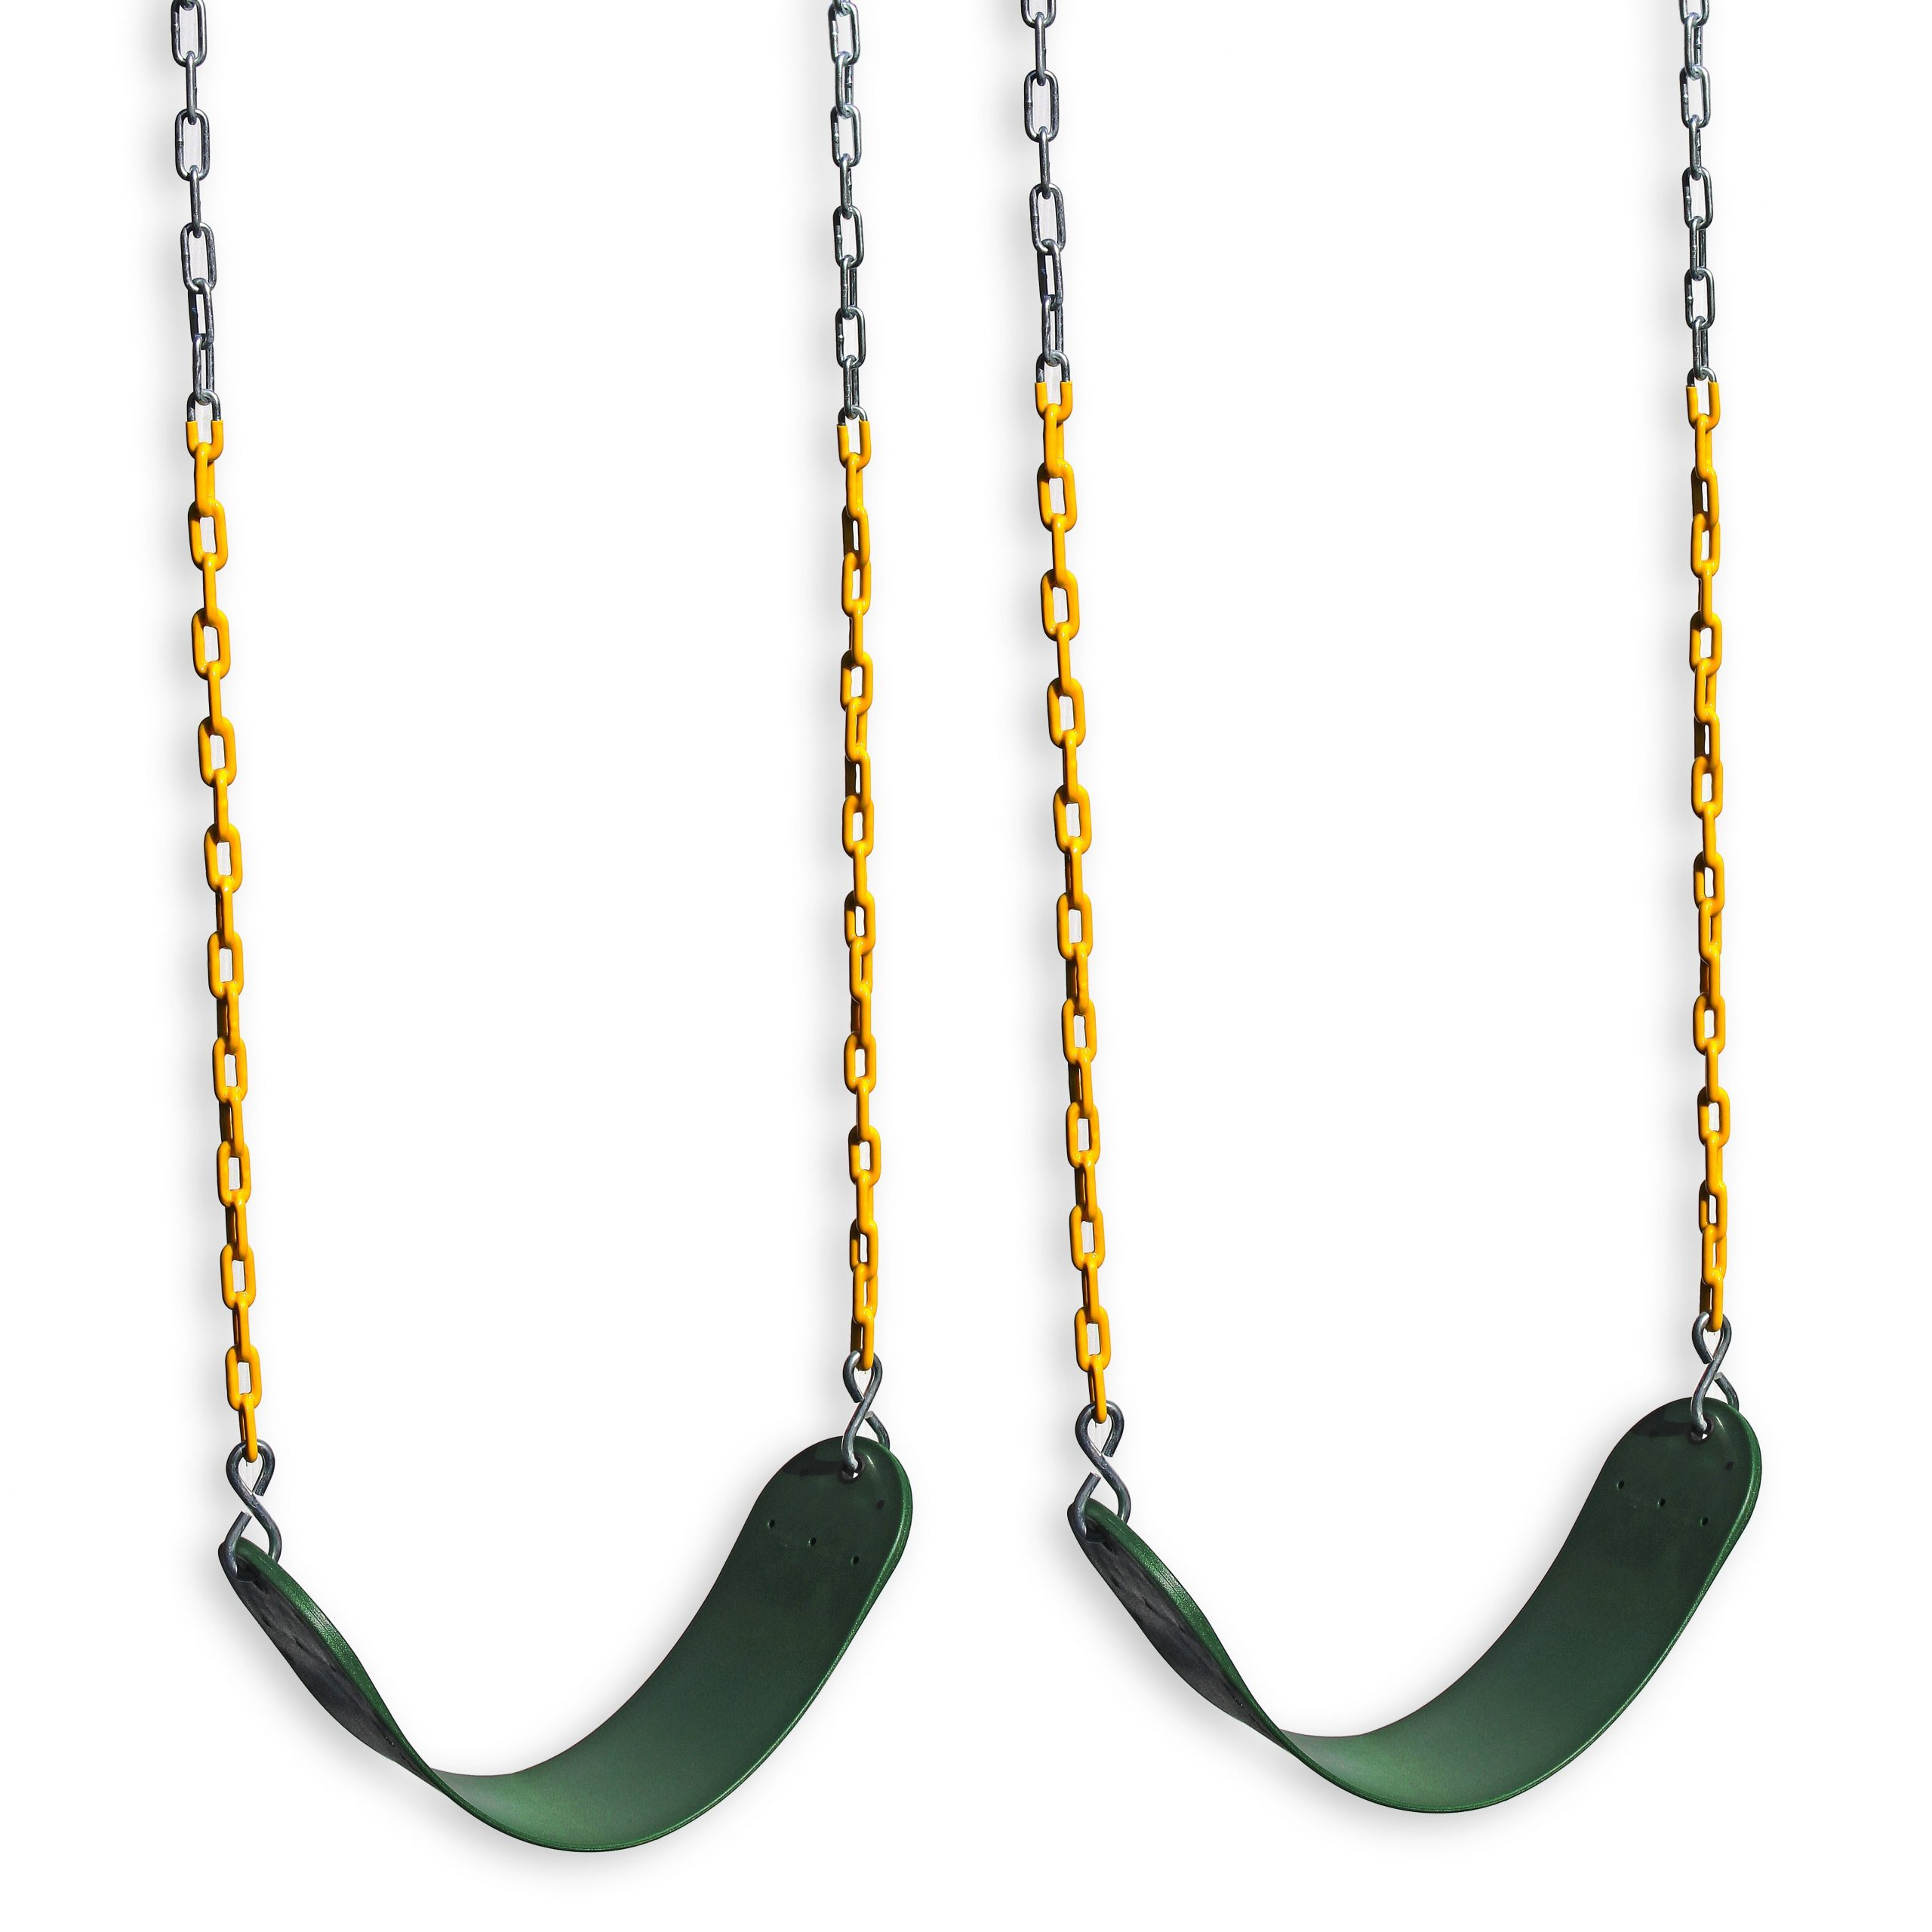 Eastern Jungle Gym Plastic Belt Swing With Chains And Hooks In Swing Seats With Chains (View 7 of 25)